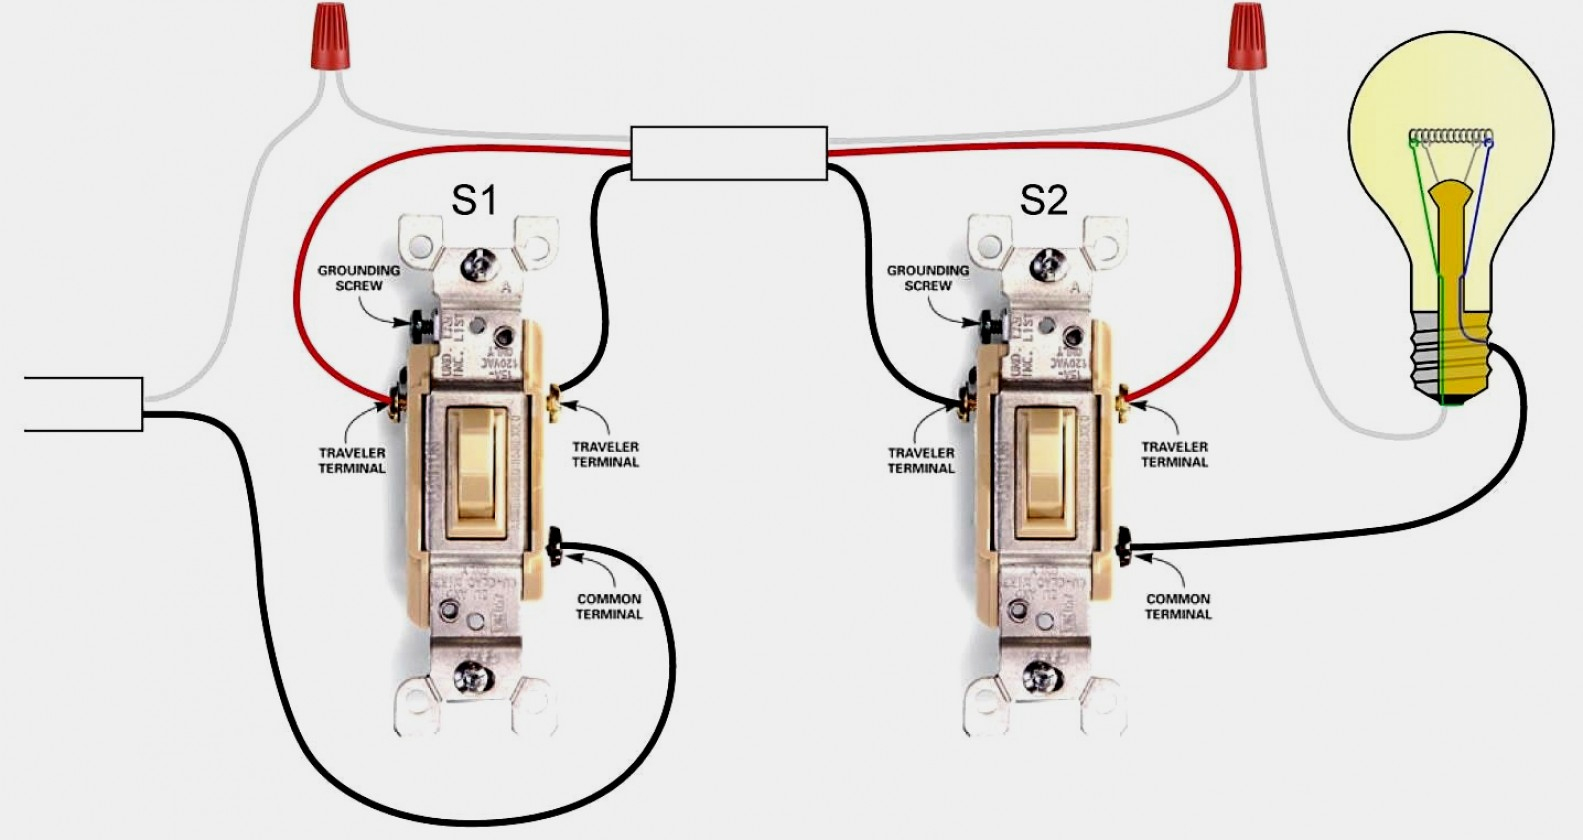 3 Position Switch Wiring Diagram Leviton | Wiring Diagram - Leviton Switch Wiring Diagram